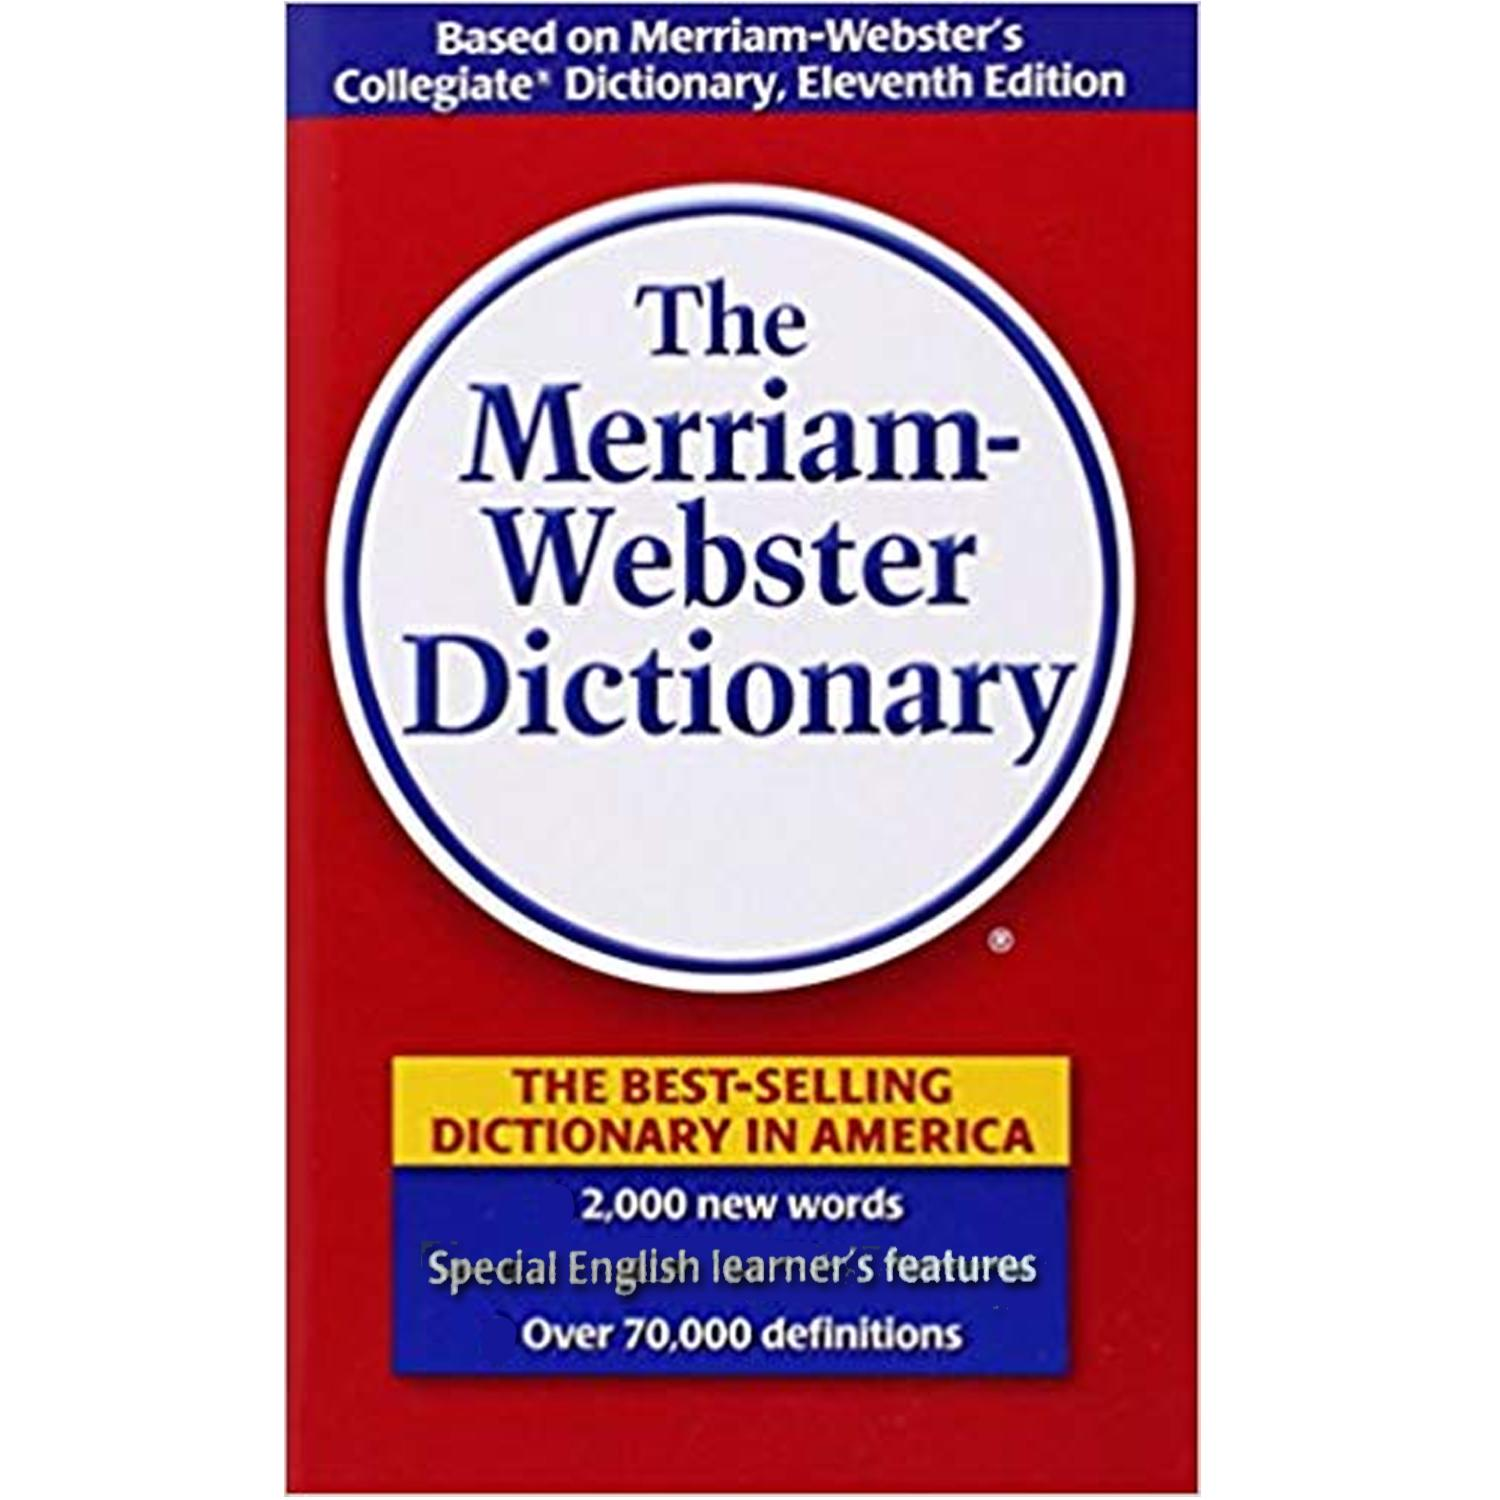 The Merriam-Webster Dictionary English Learner's Features